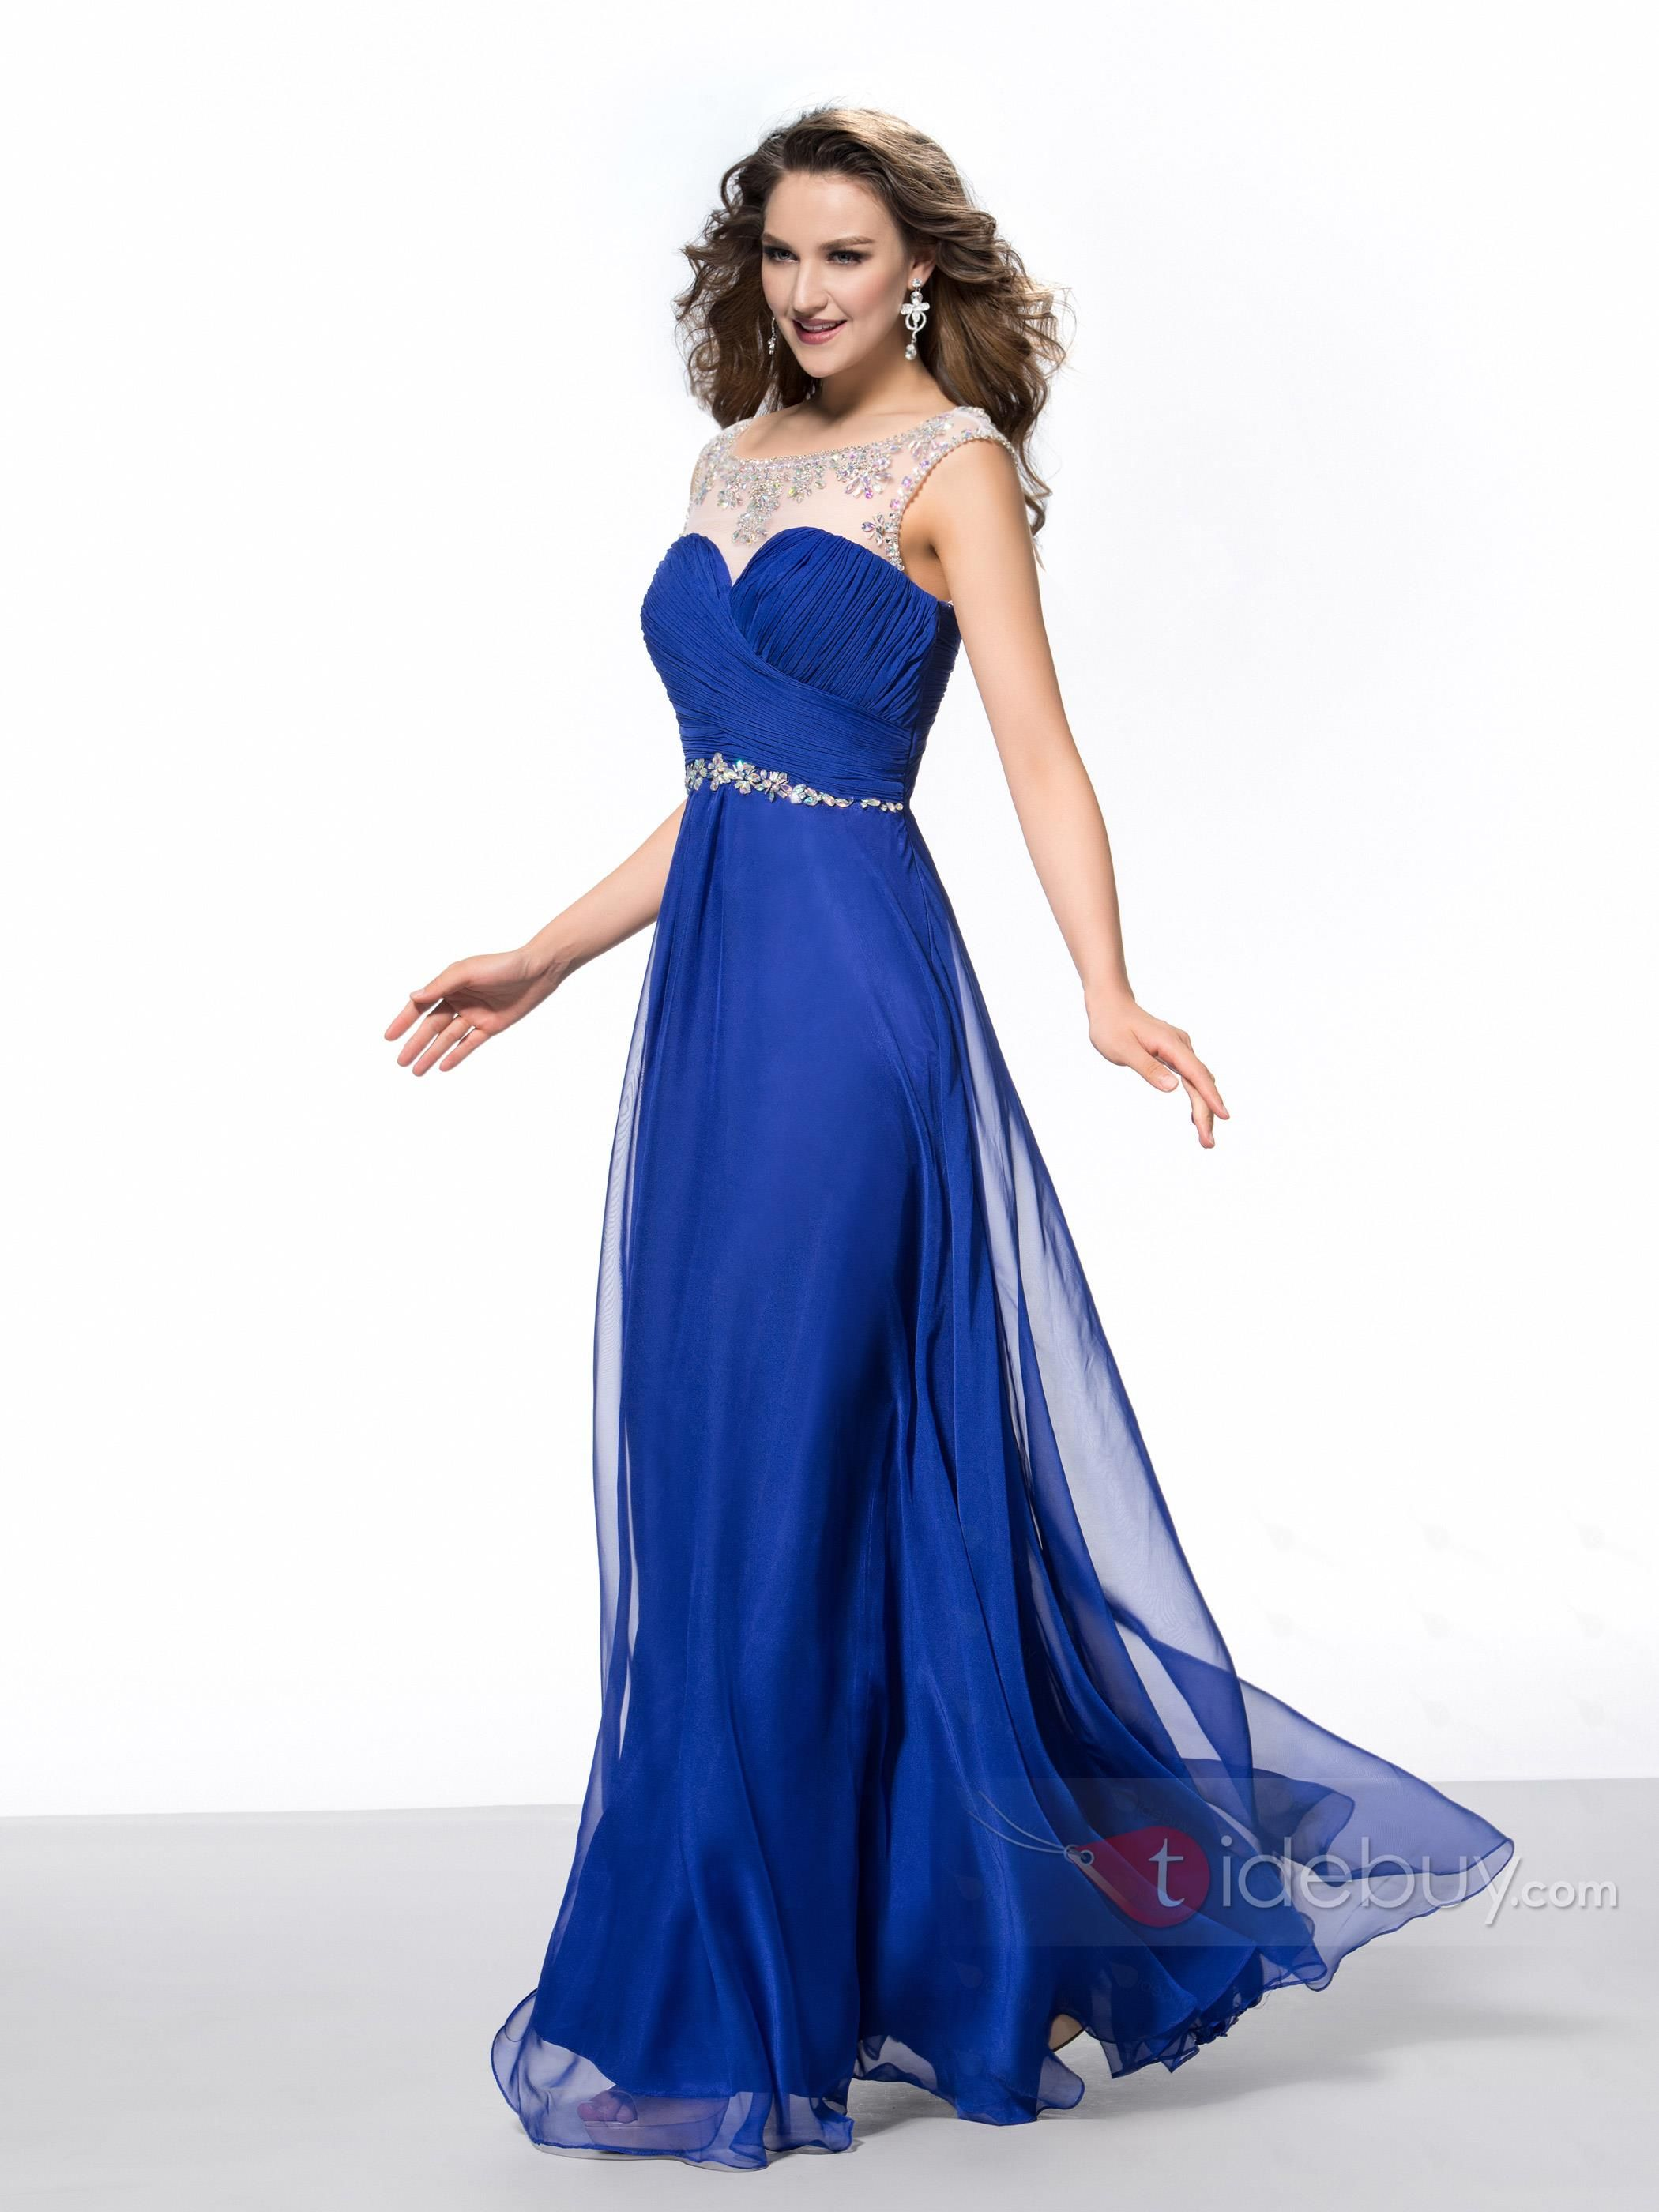 Tina do you like this dress i would like it in ice blue what do